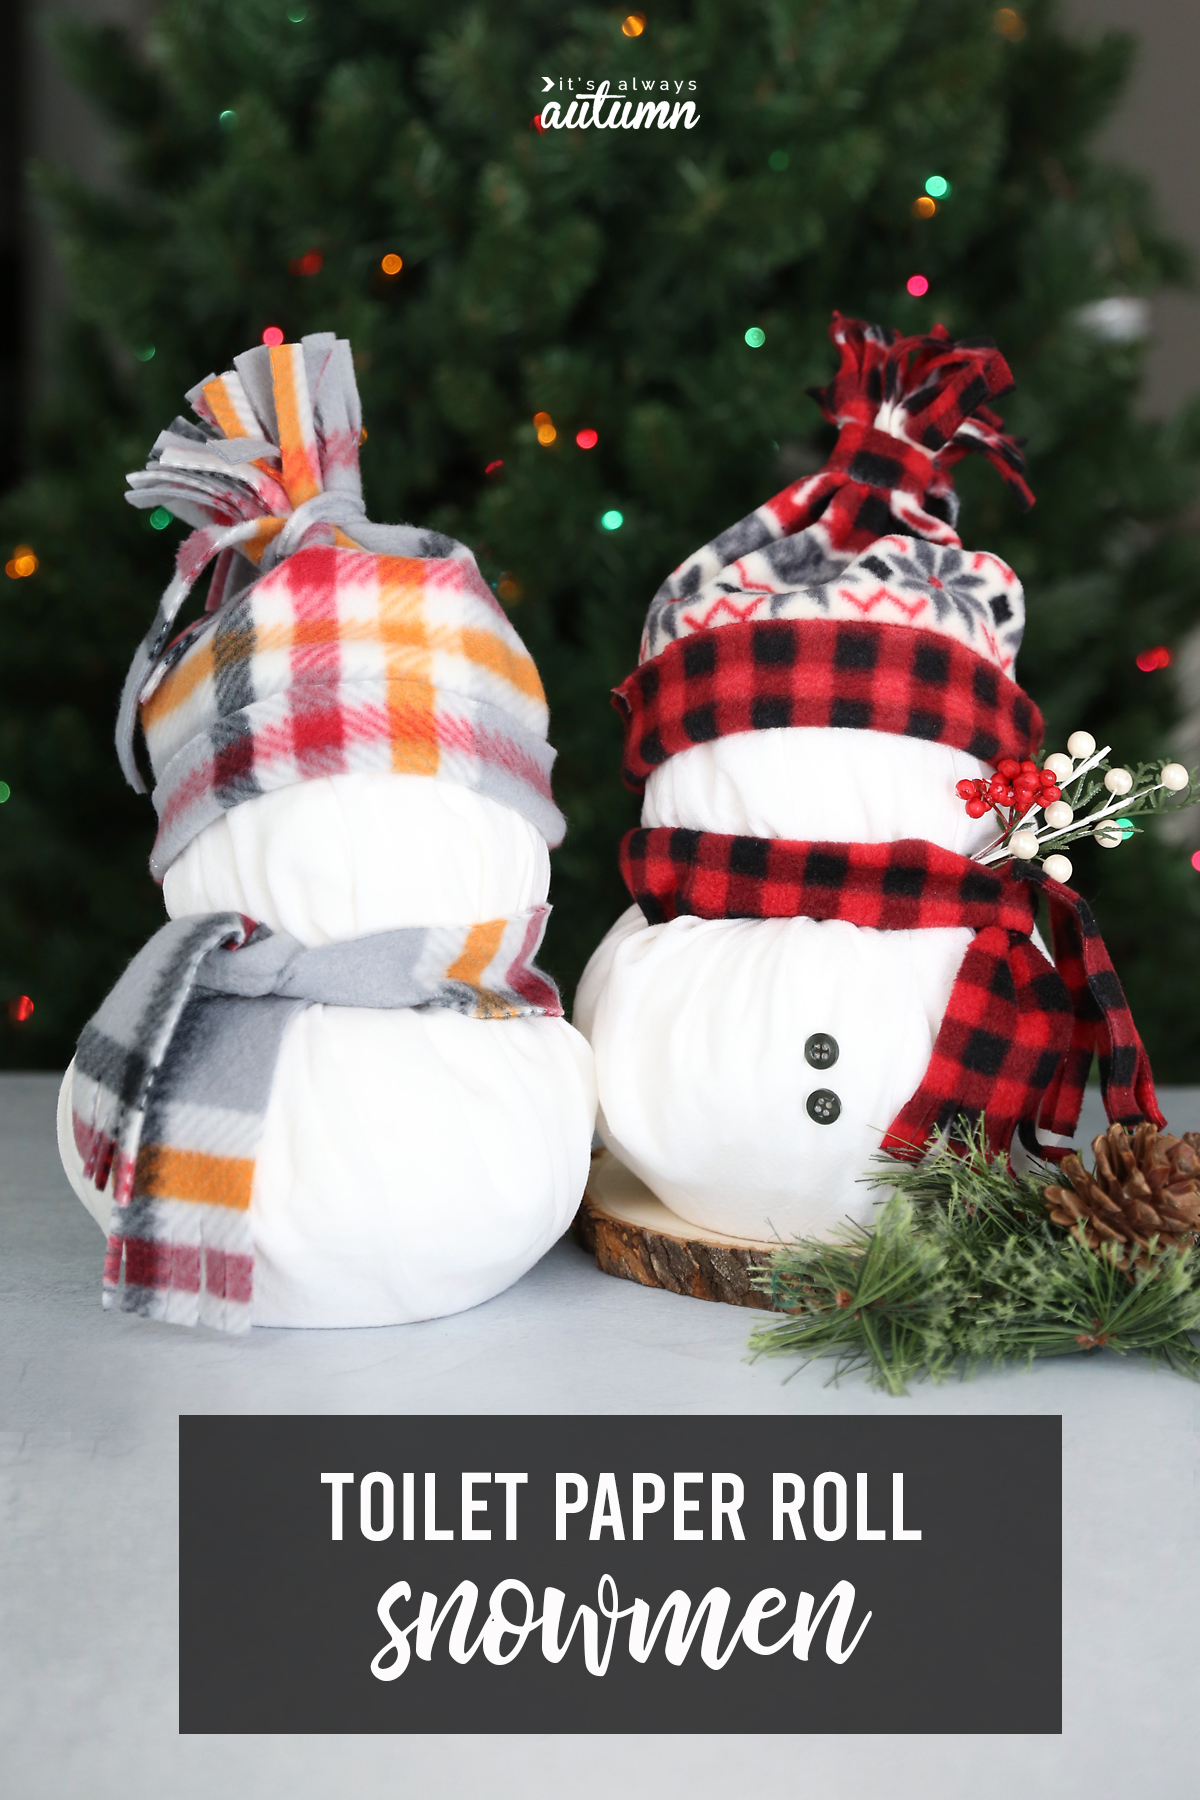 These adorable snowmen are made from rolls of toilet paper! Cute, easy Christmas craft.